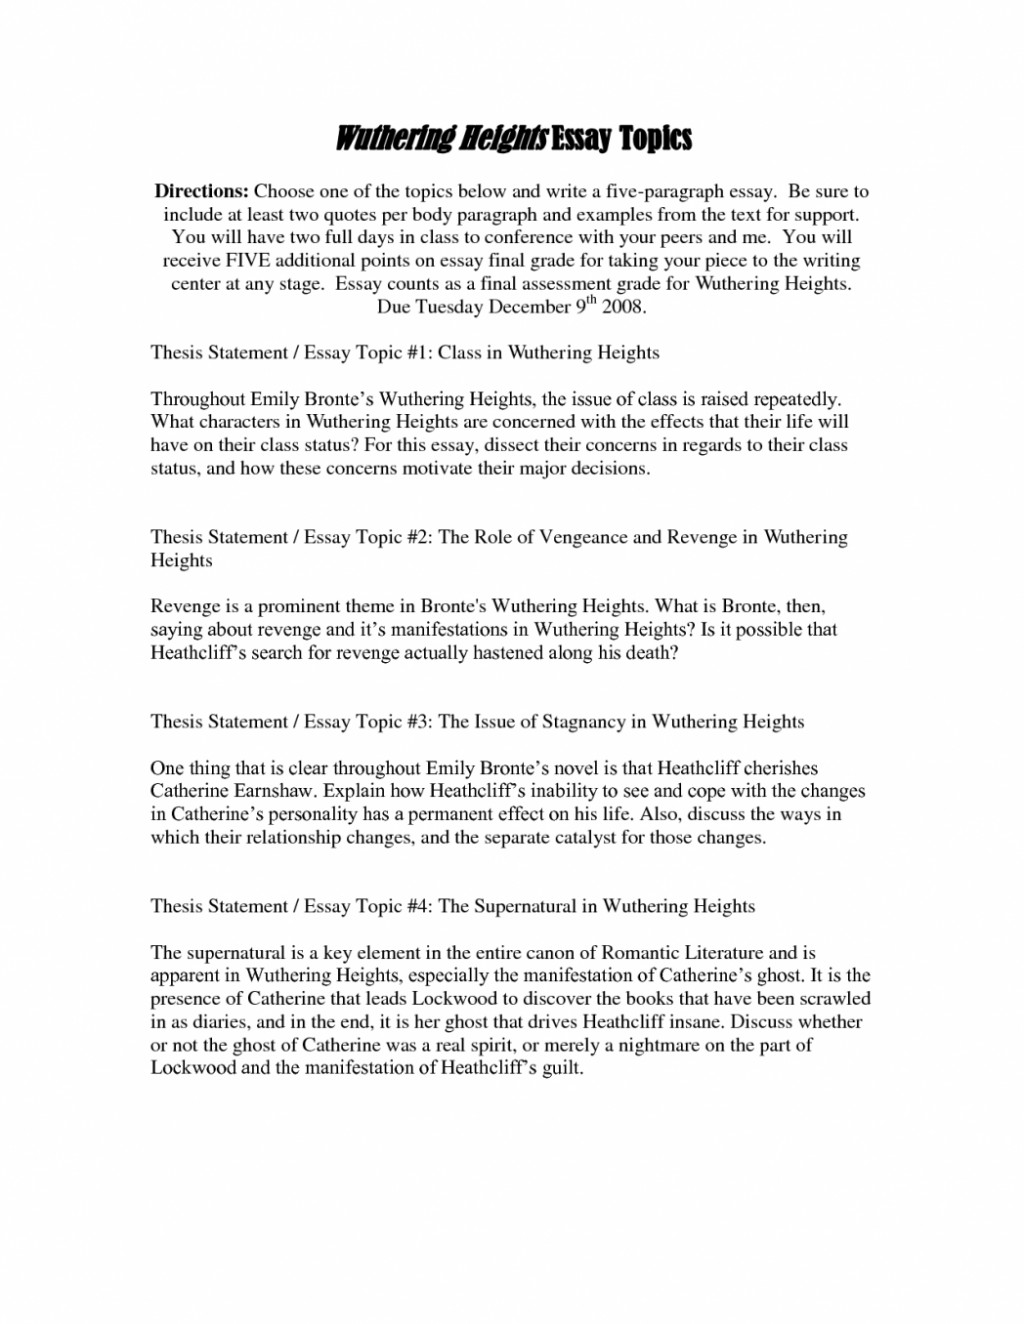 007 Define Thesis Statement In An Essay Wikipedia Step Six From To Writing 8au18 Dbq 1048x1356 Stirring Definition Examples For Argumentative Template Example Large